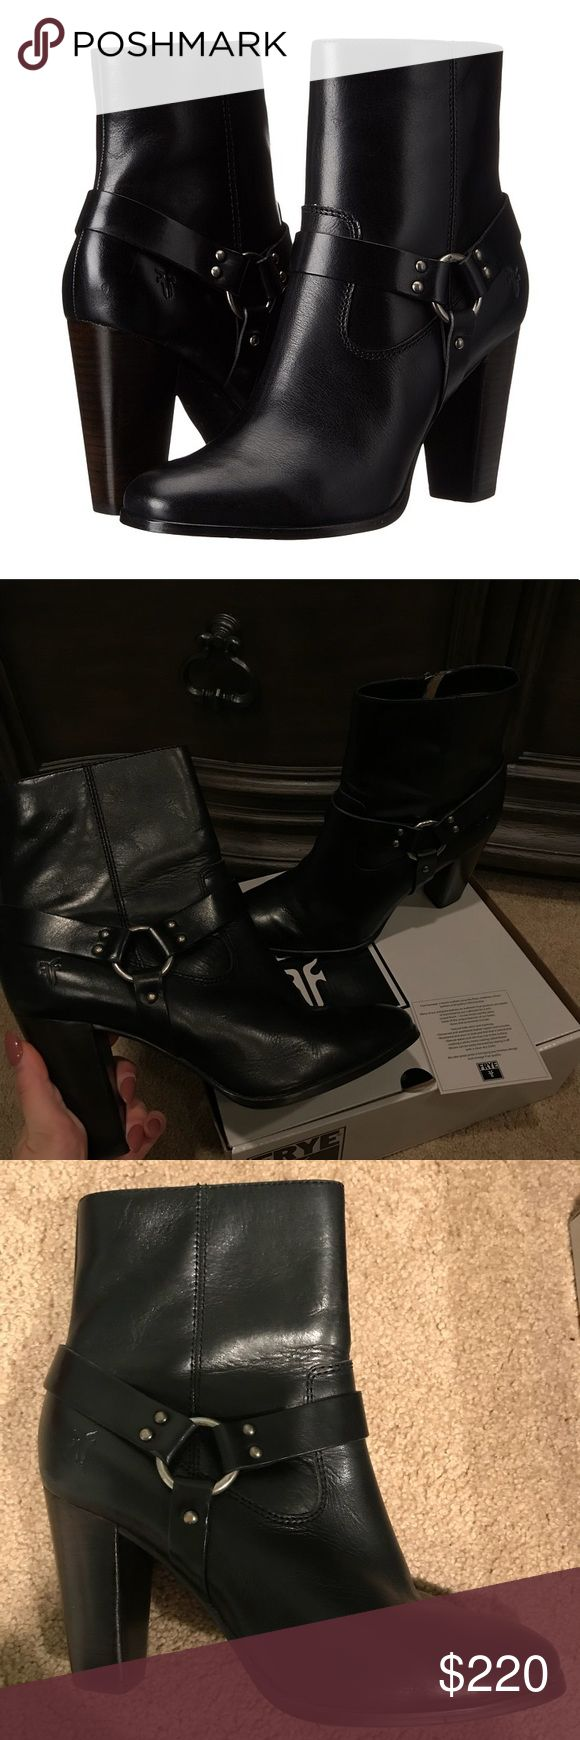 Frye Laurie Harness Boots Black Frye Laurie Harness short boots. Only worn a few times. Great condition. Frye Shoes Ankle Boots & Booties